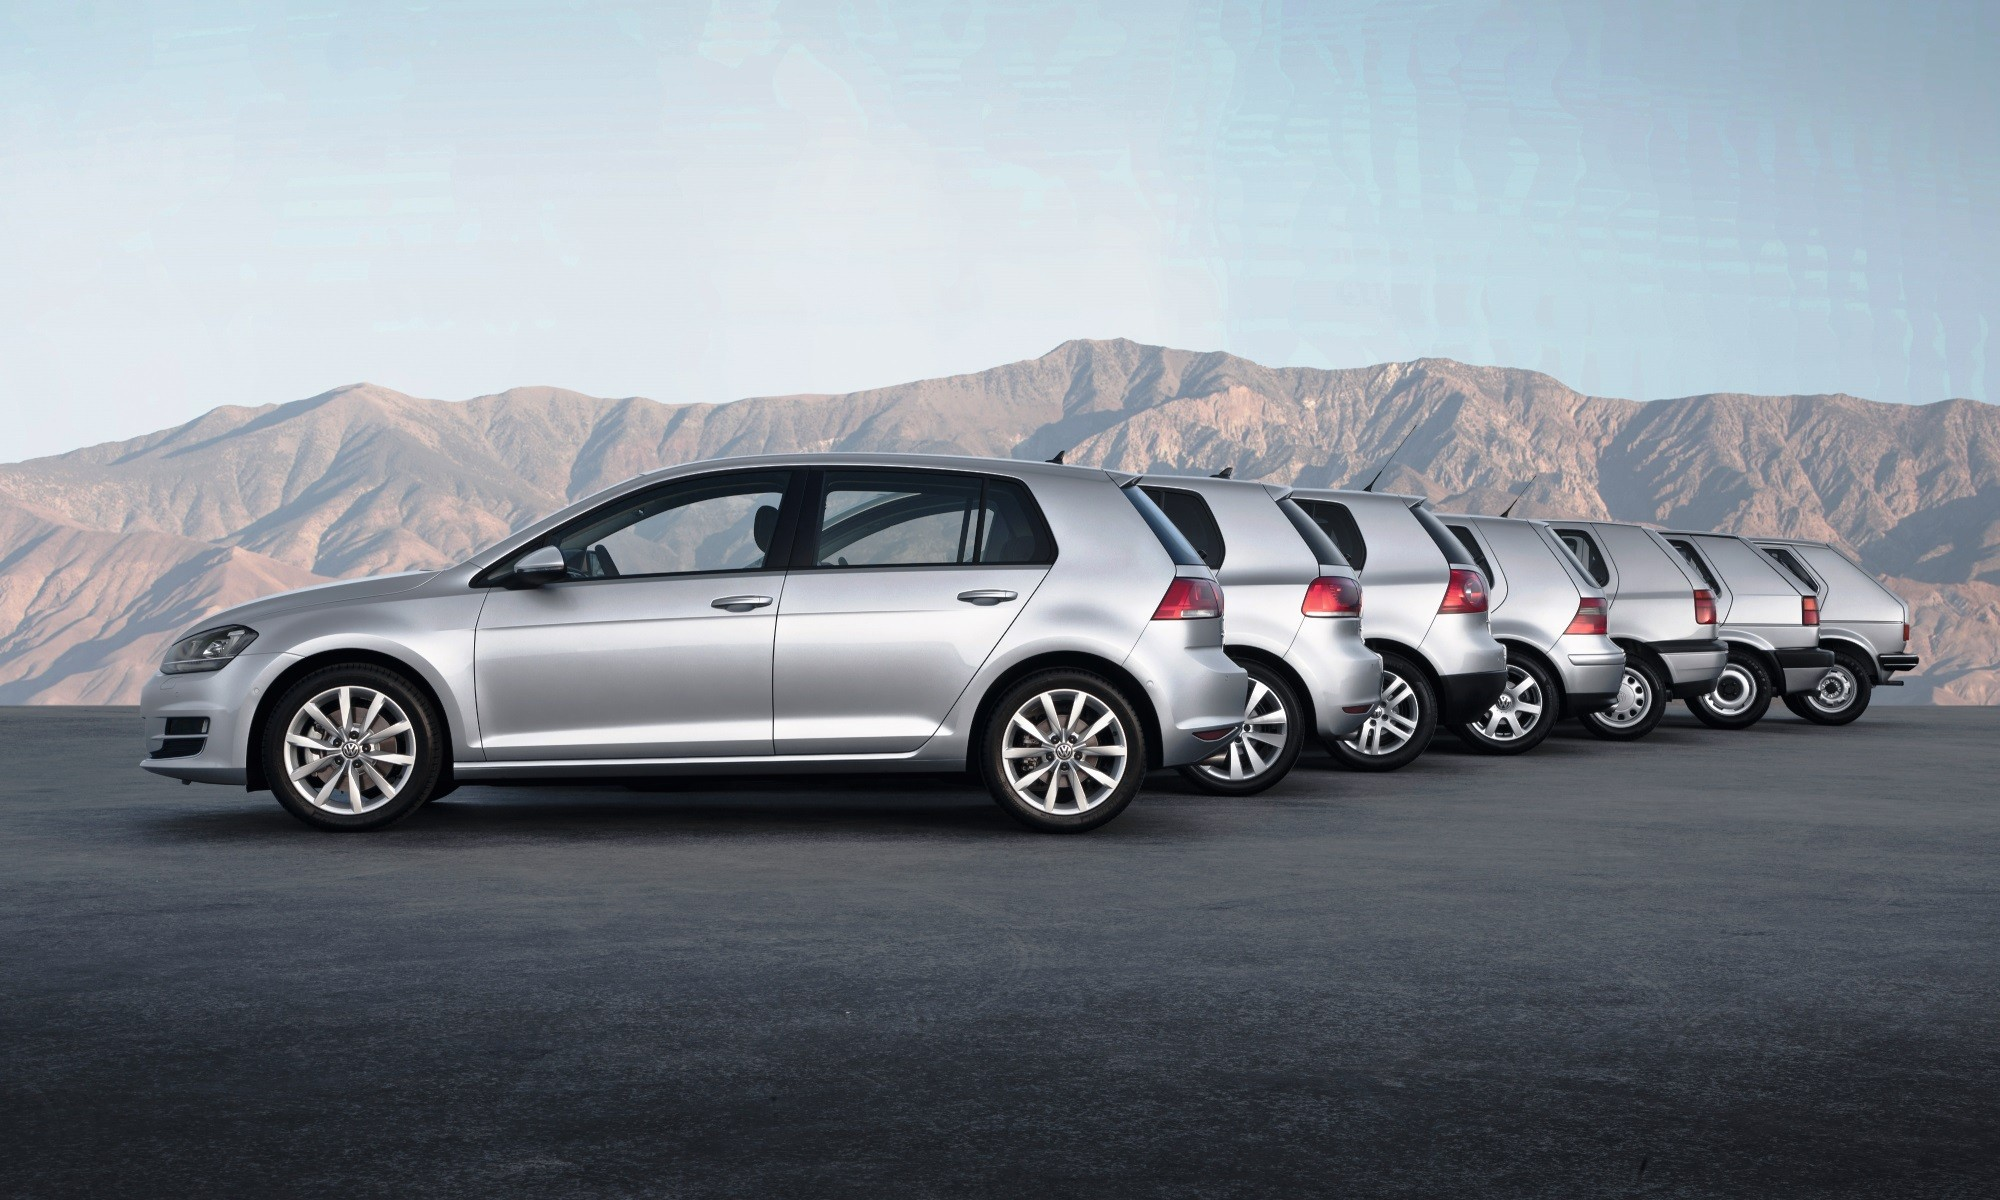 VW Golf generations